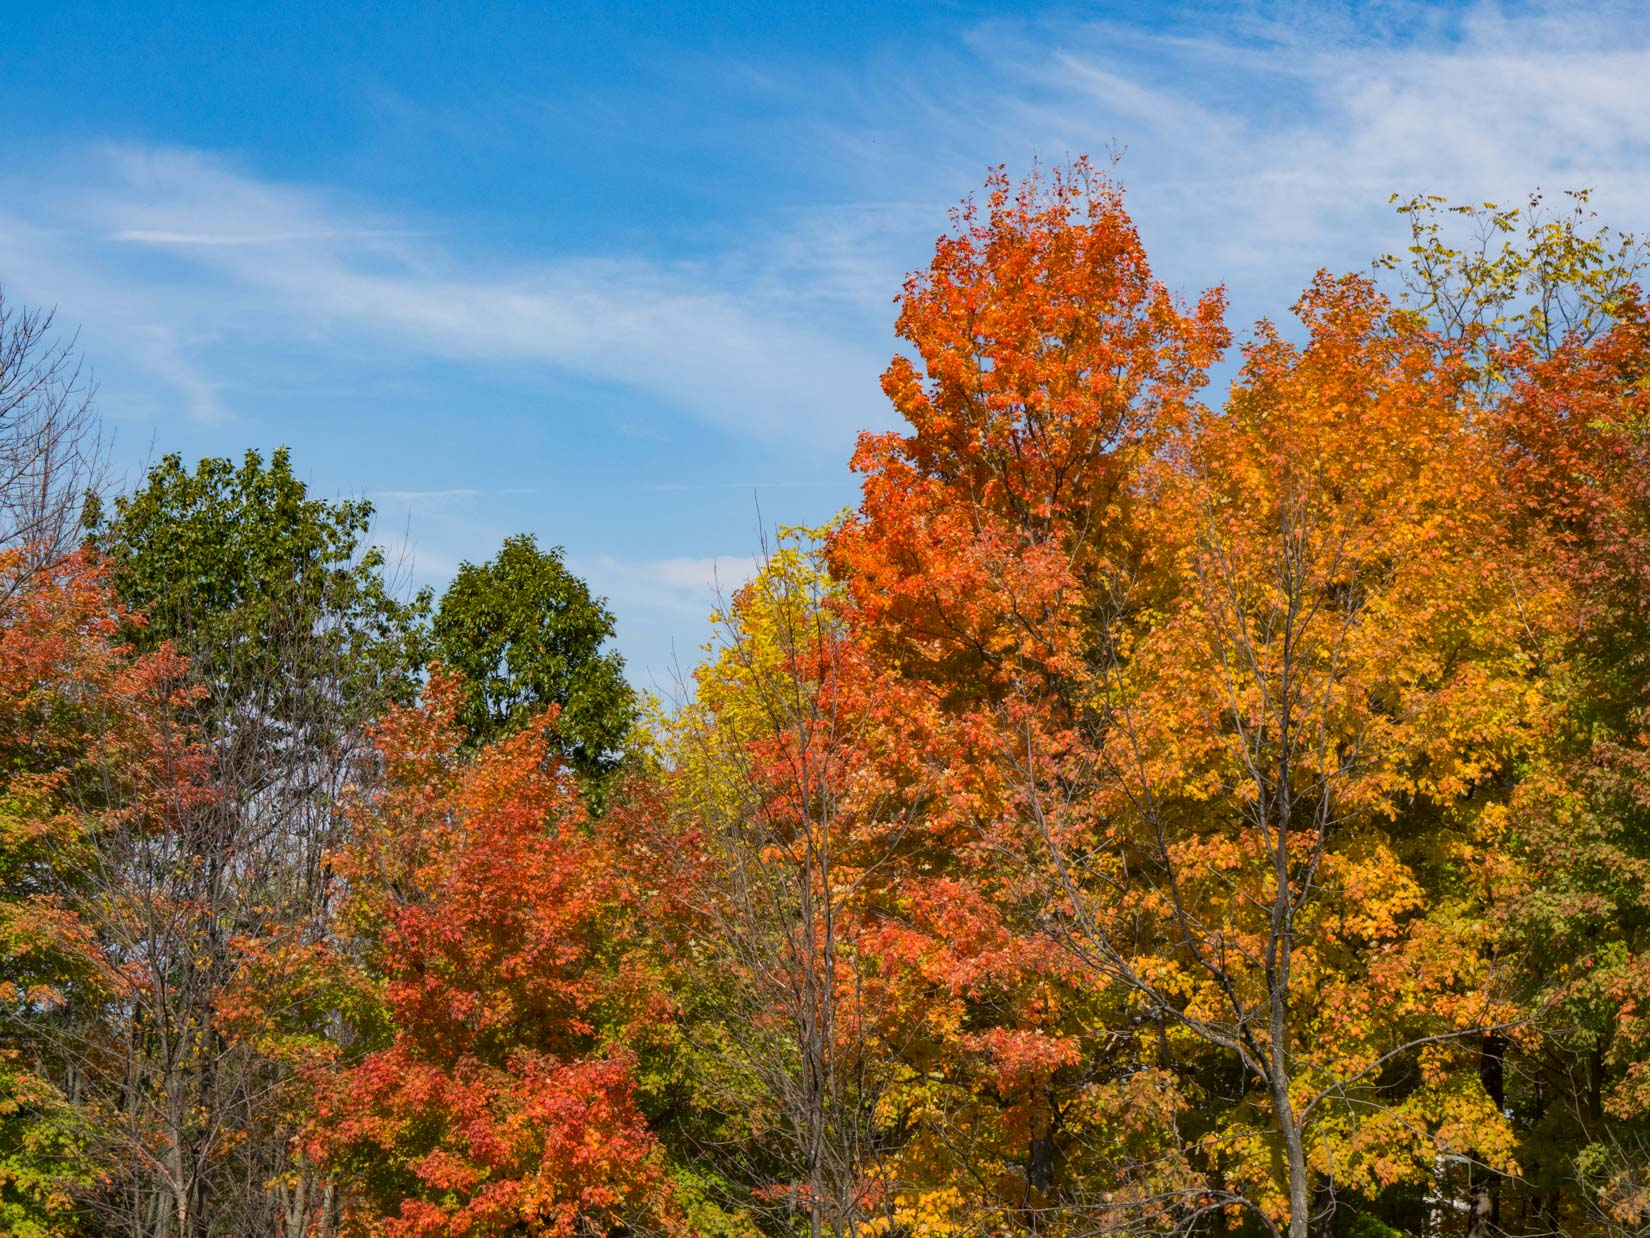 Trees With Colorful Fall Leaves – FOCA